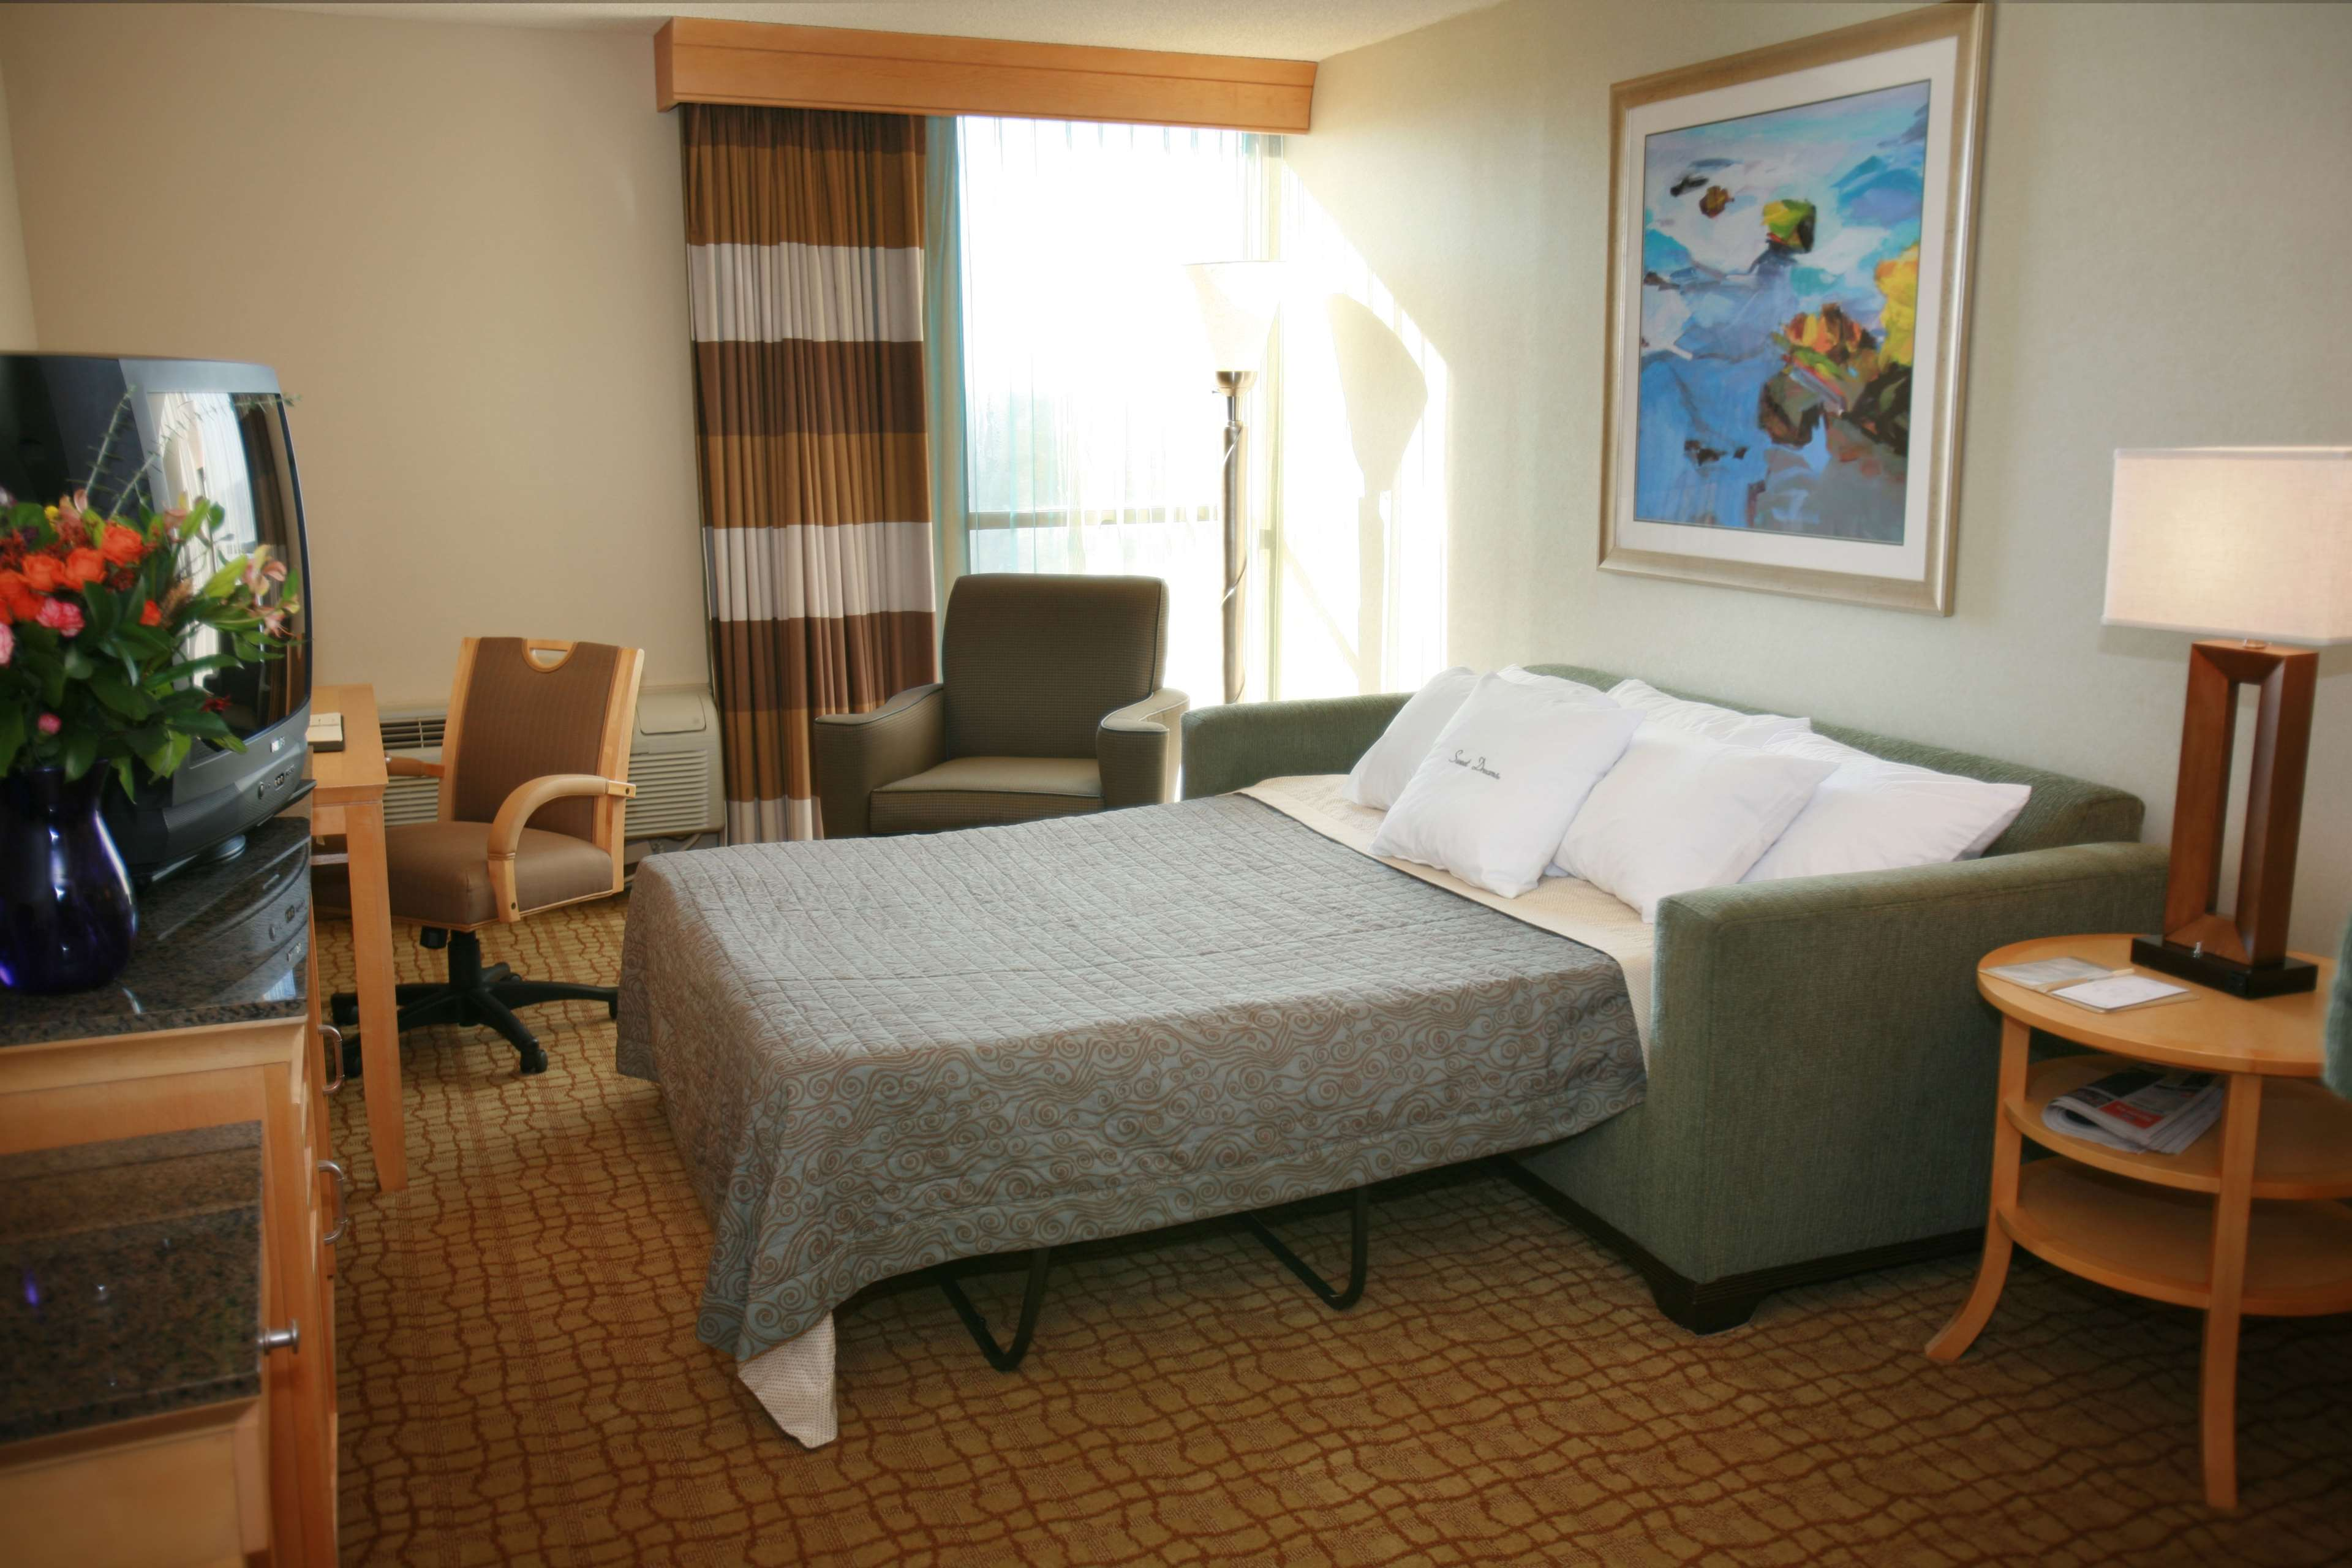 DoubleTree by Hilton Hotel Virginia Beach image 14